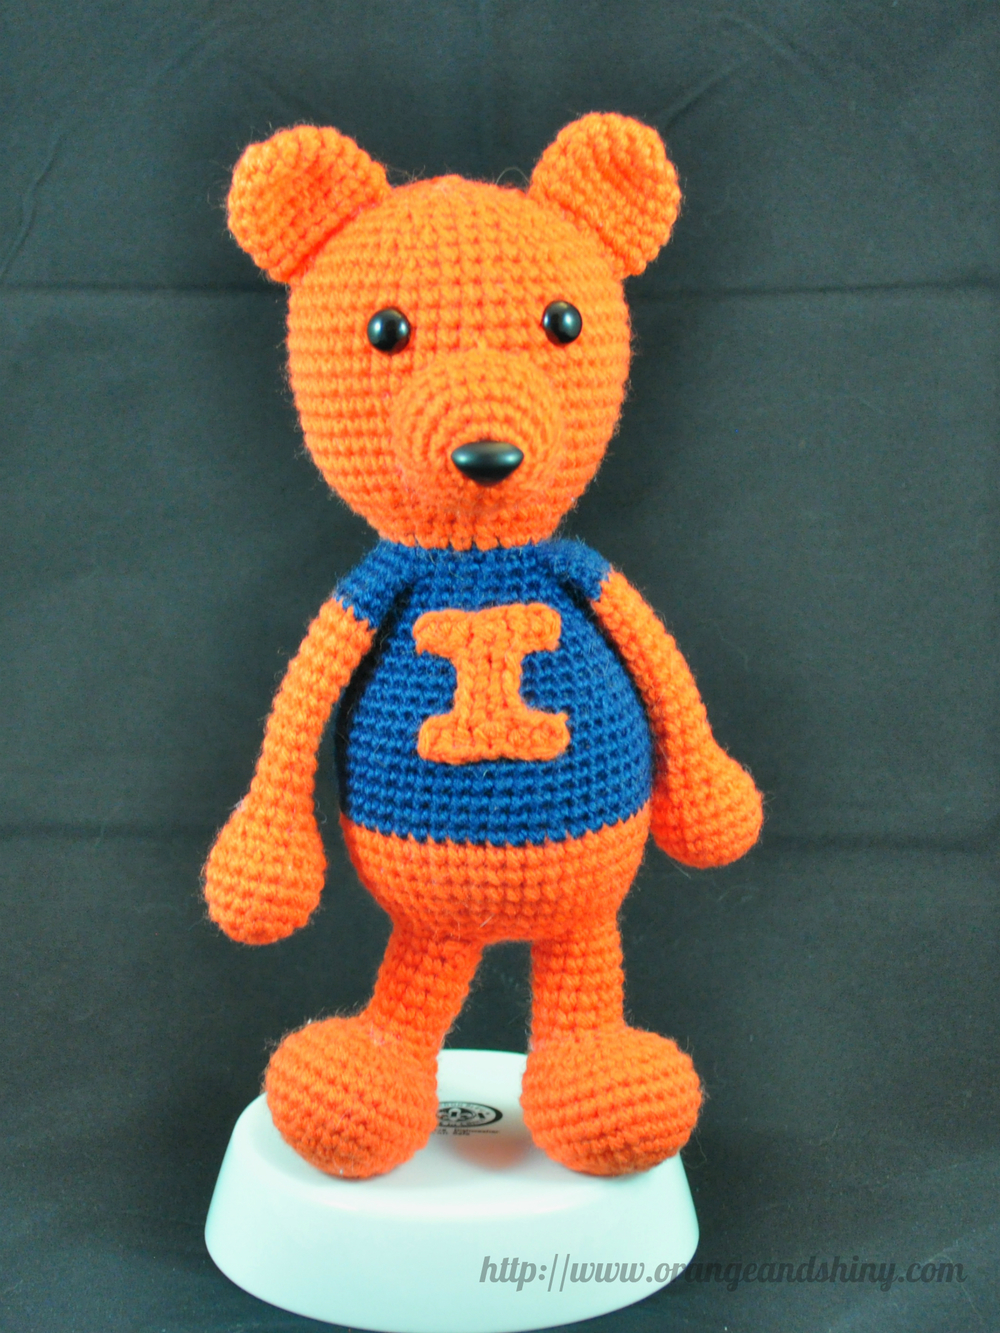 Illini Teddy Bear